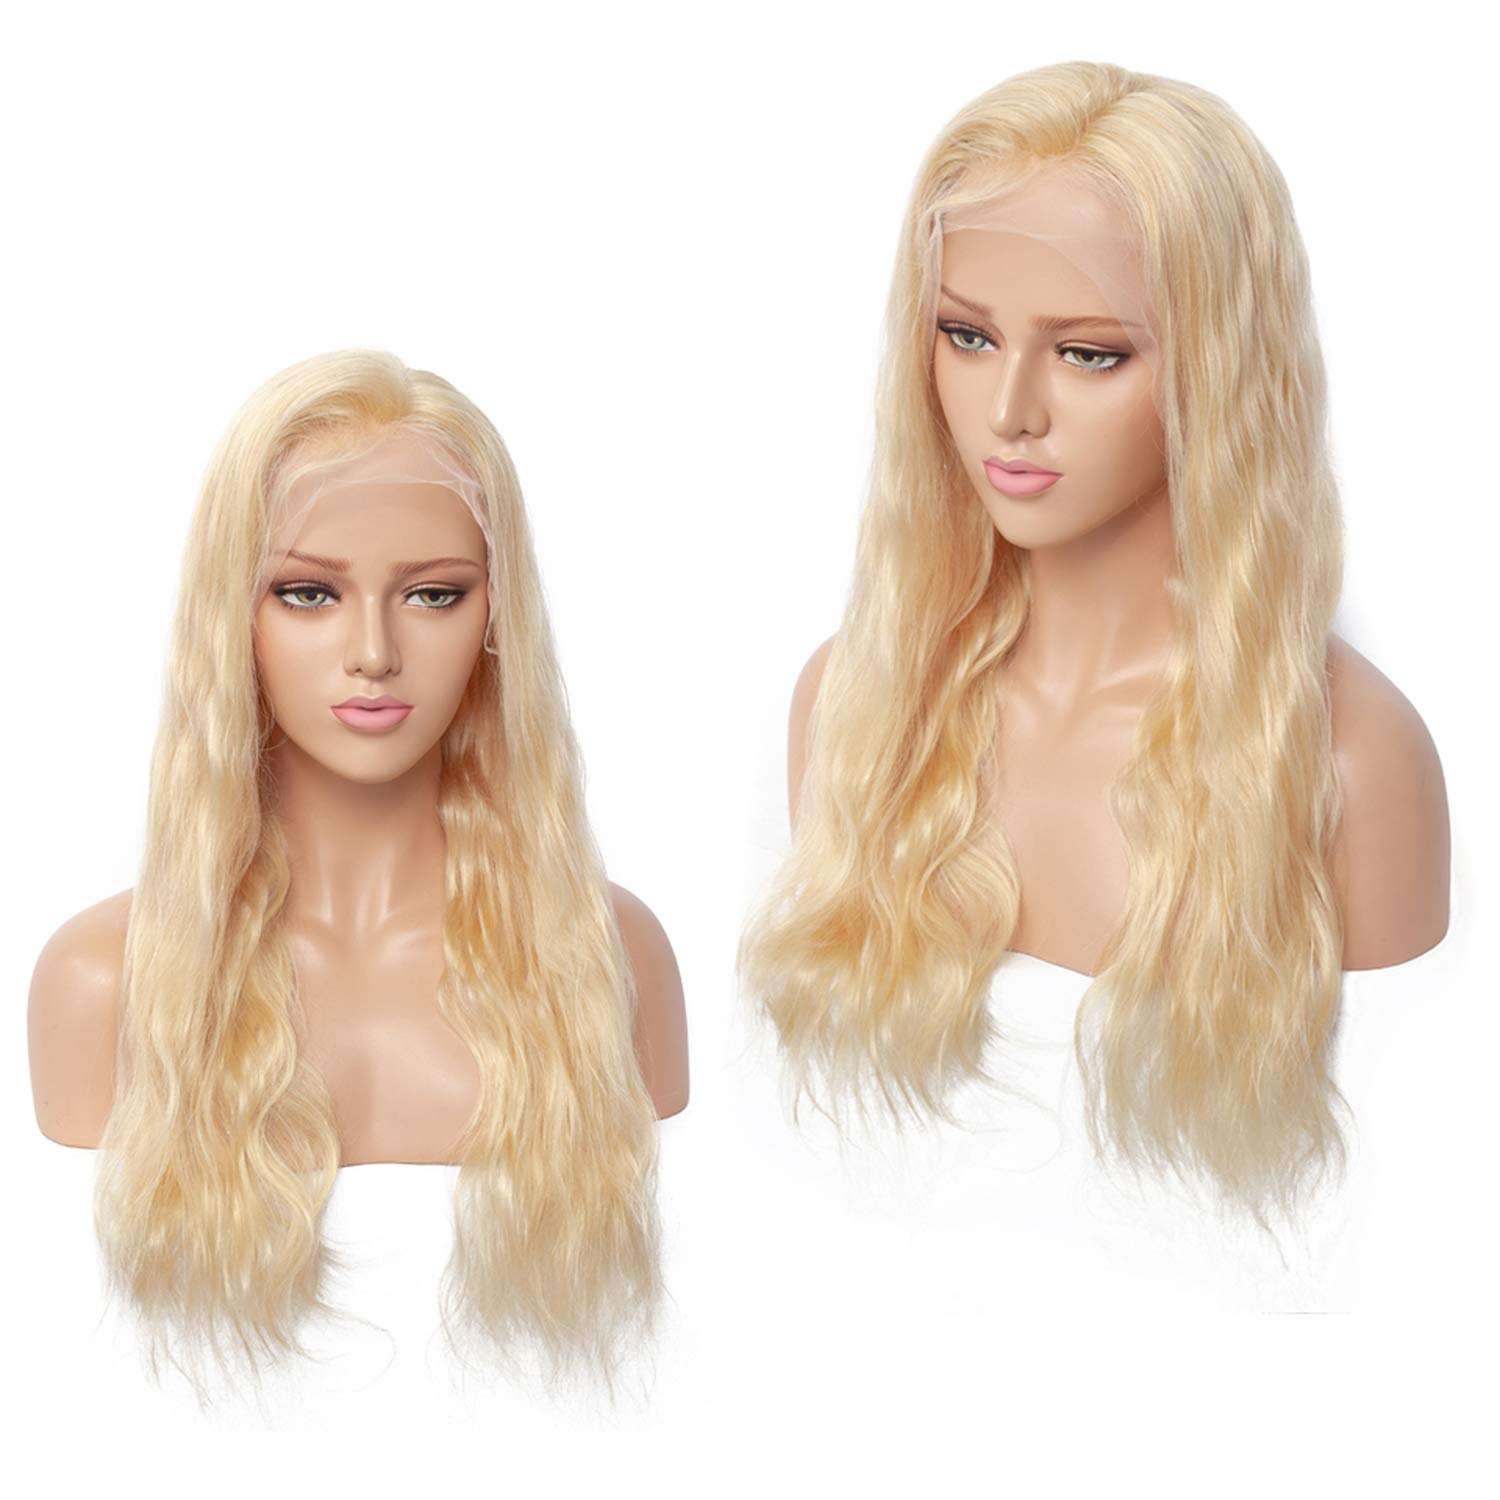 #613 Blonde Full Lace Wigs Peruvian Hair Transparent Lace Full Lace Human Hair Wig With Baby Hair 8-24 Inch,18inches,130% 61dKsalSwLL._SL1500_